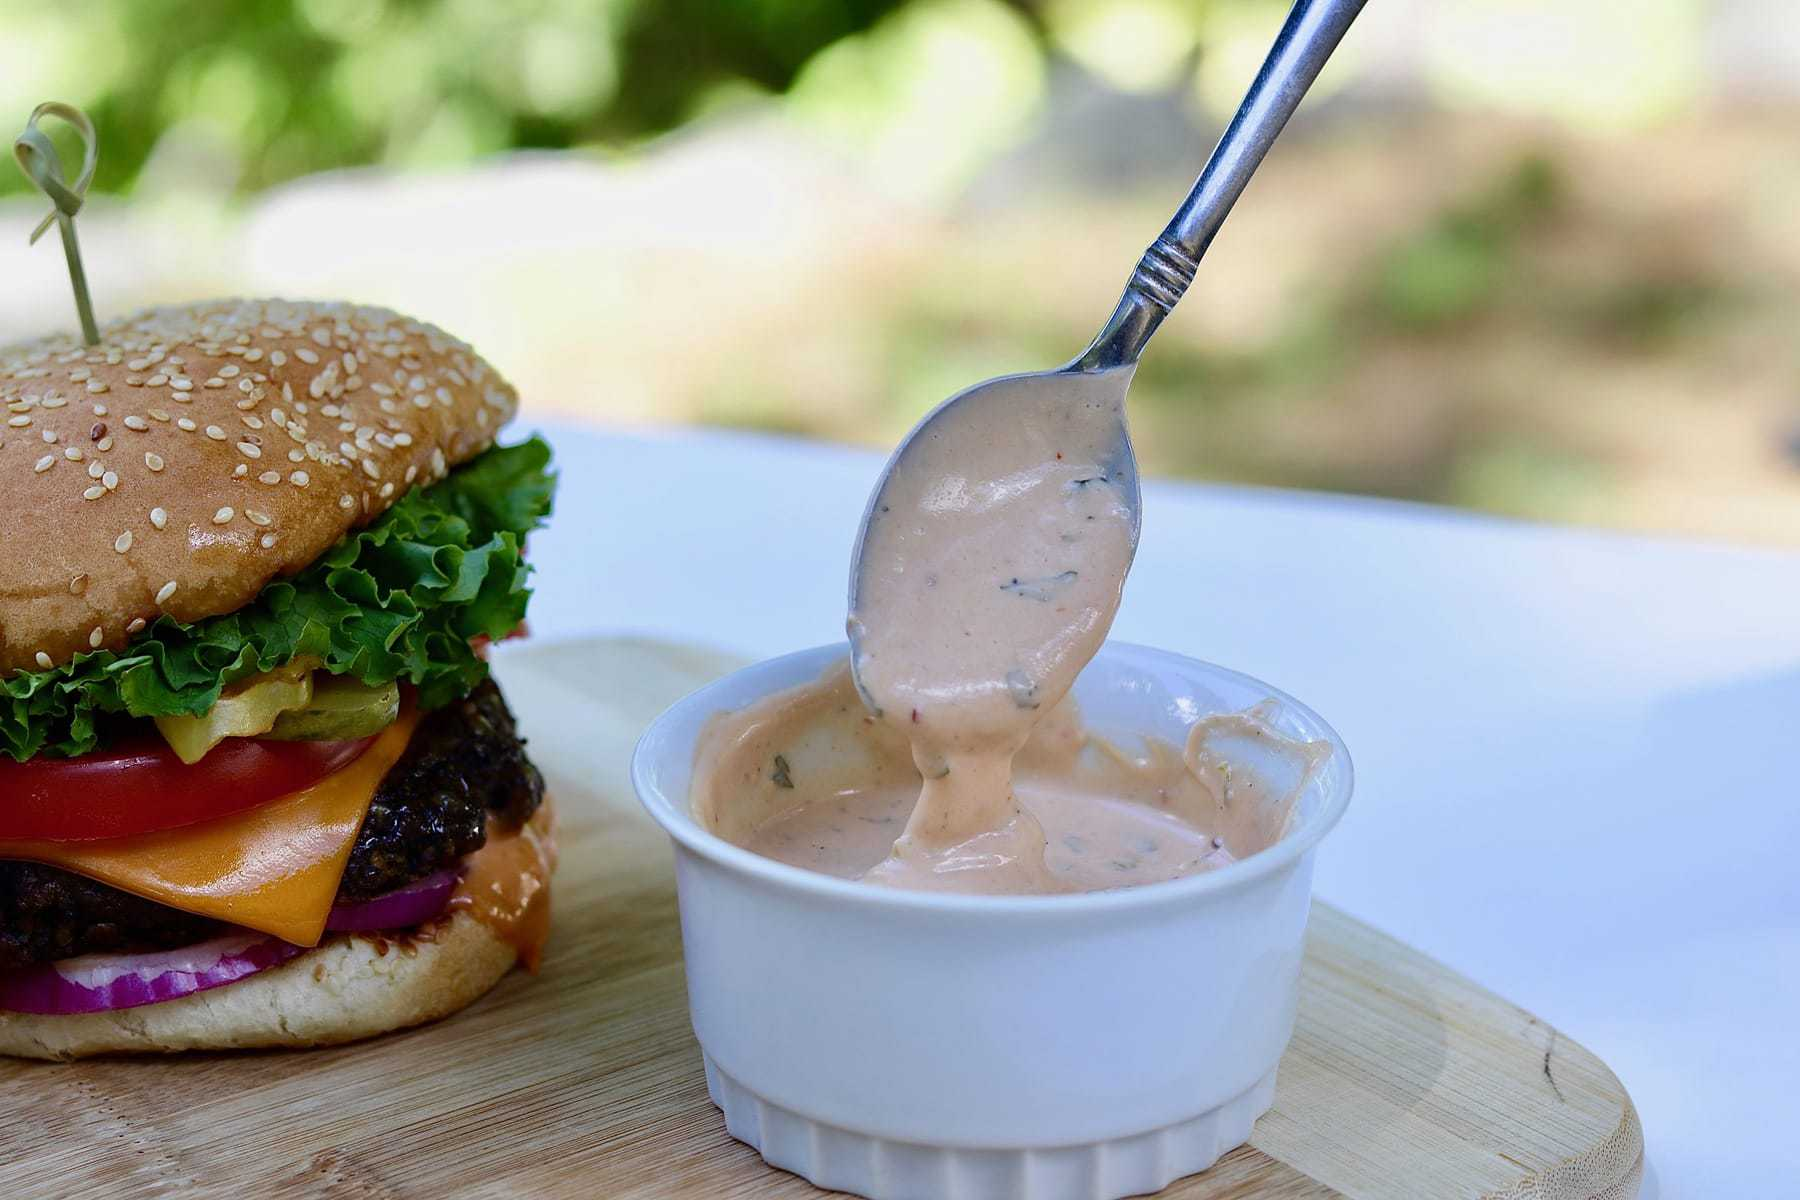 burger sauce in white bowl on wooden cutting board